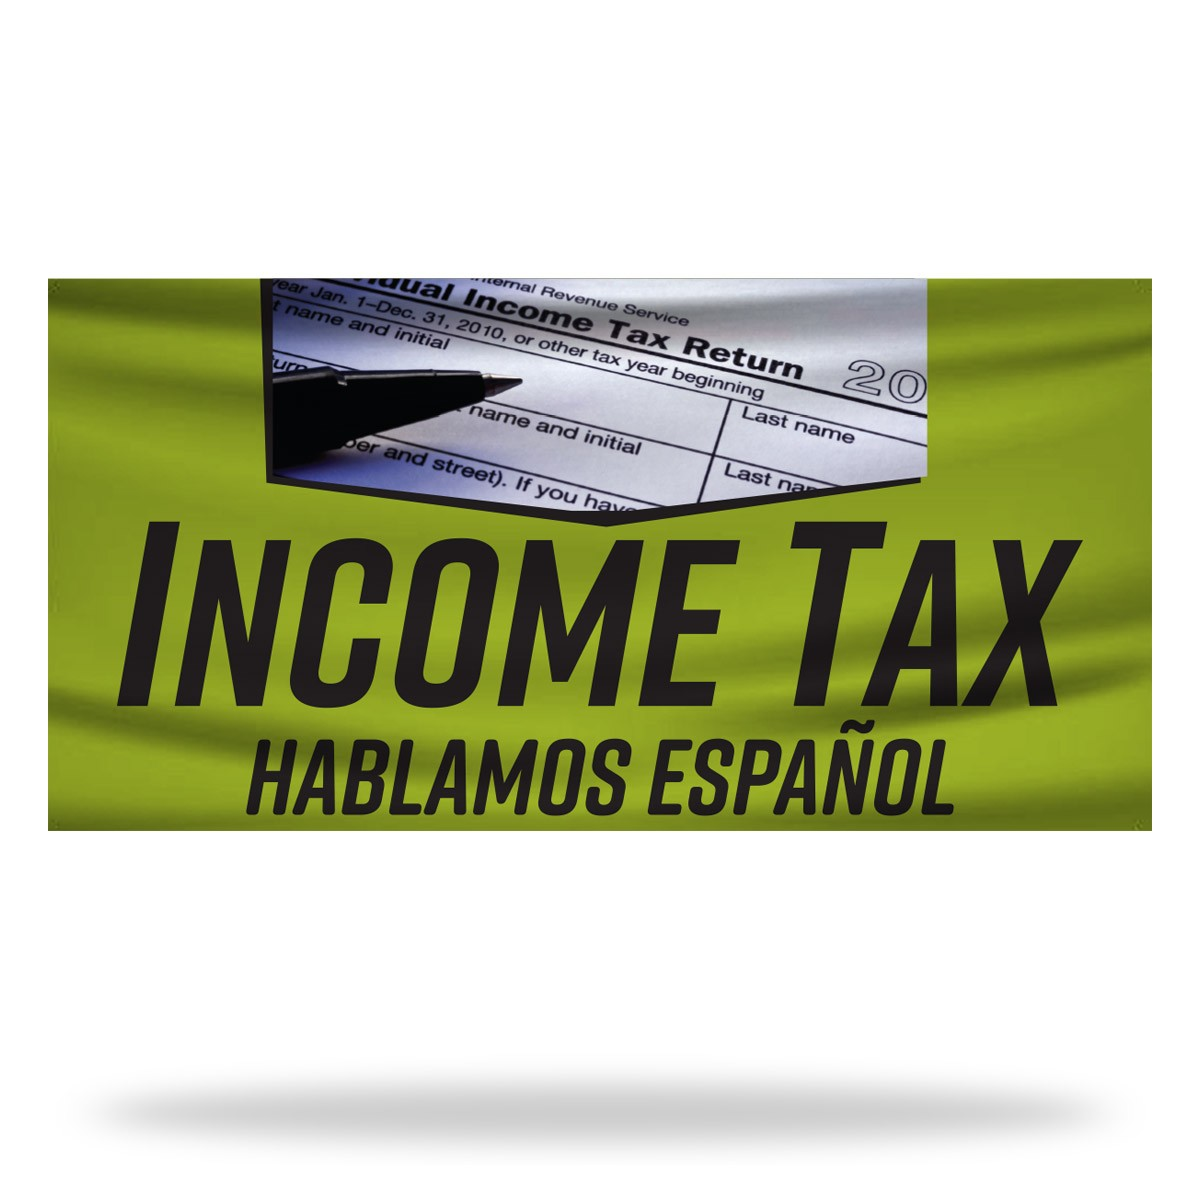 Income Tax Flags & Banners Design 02